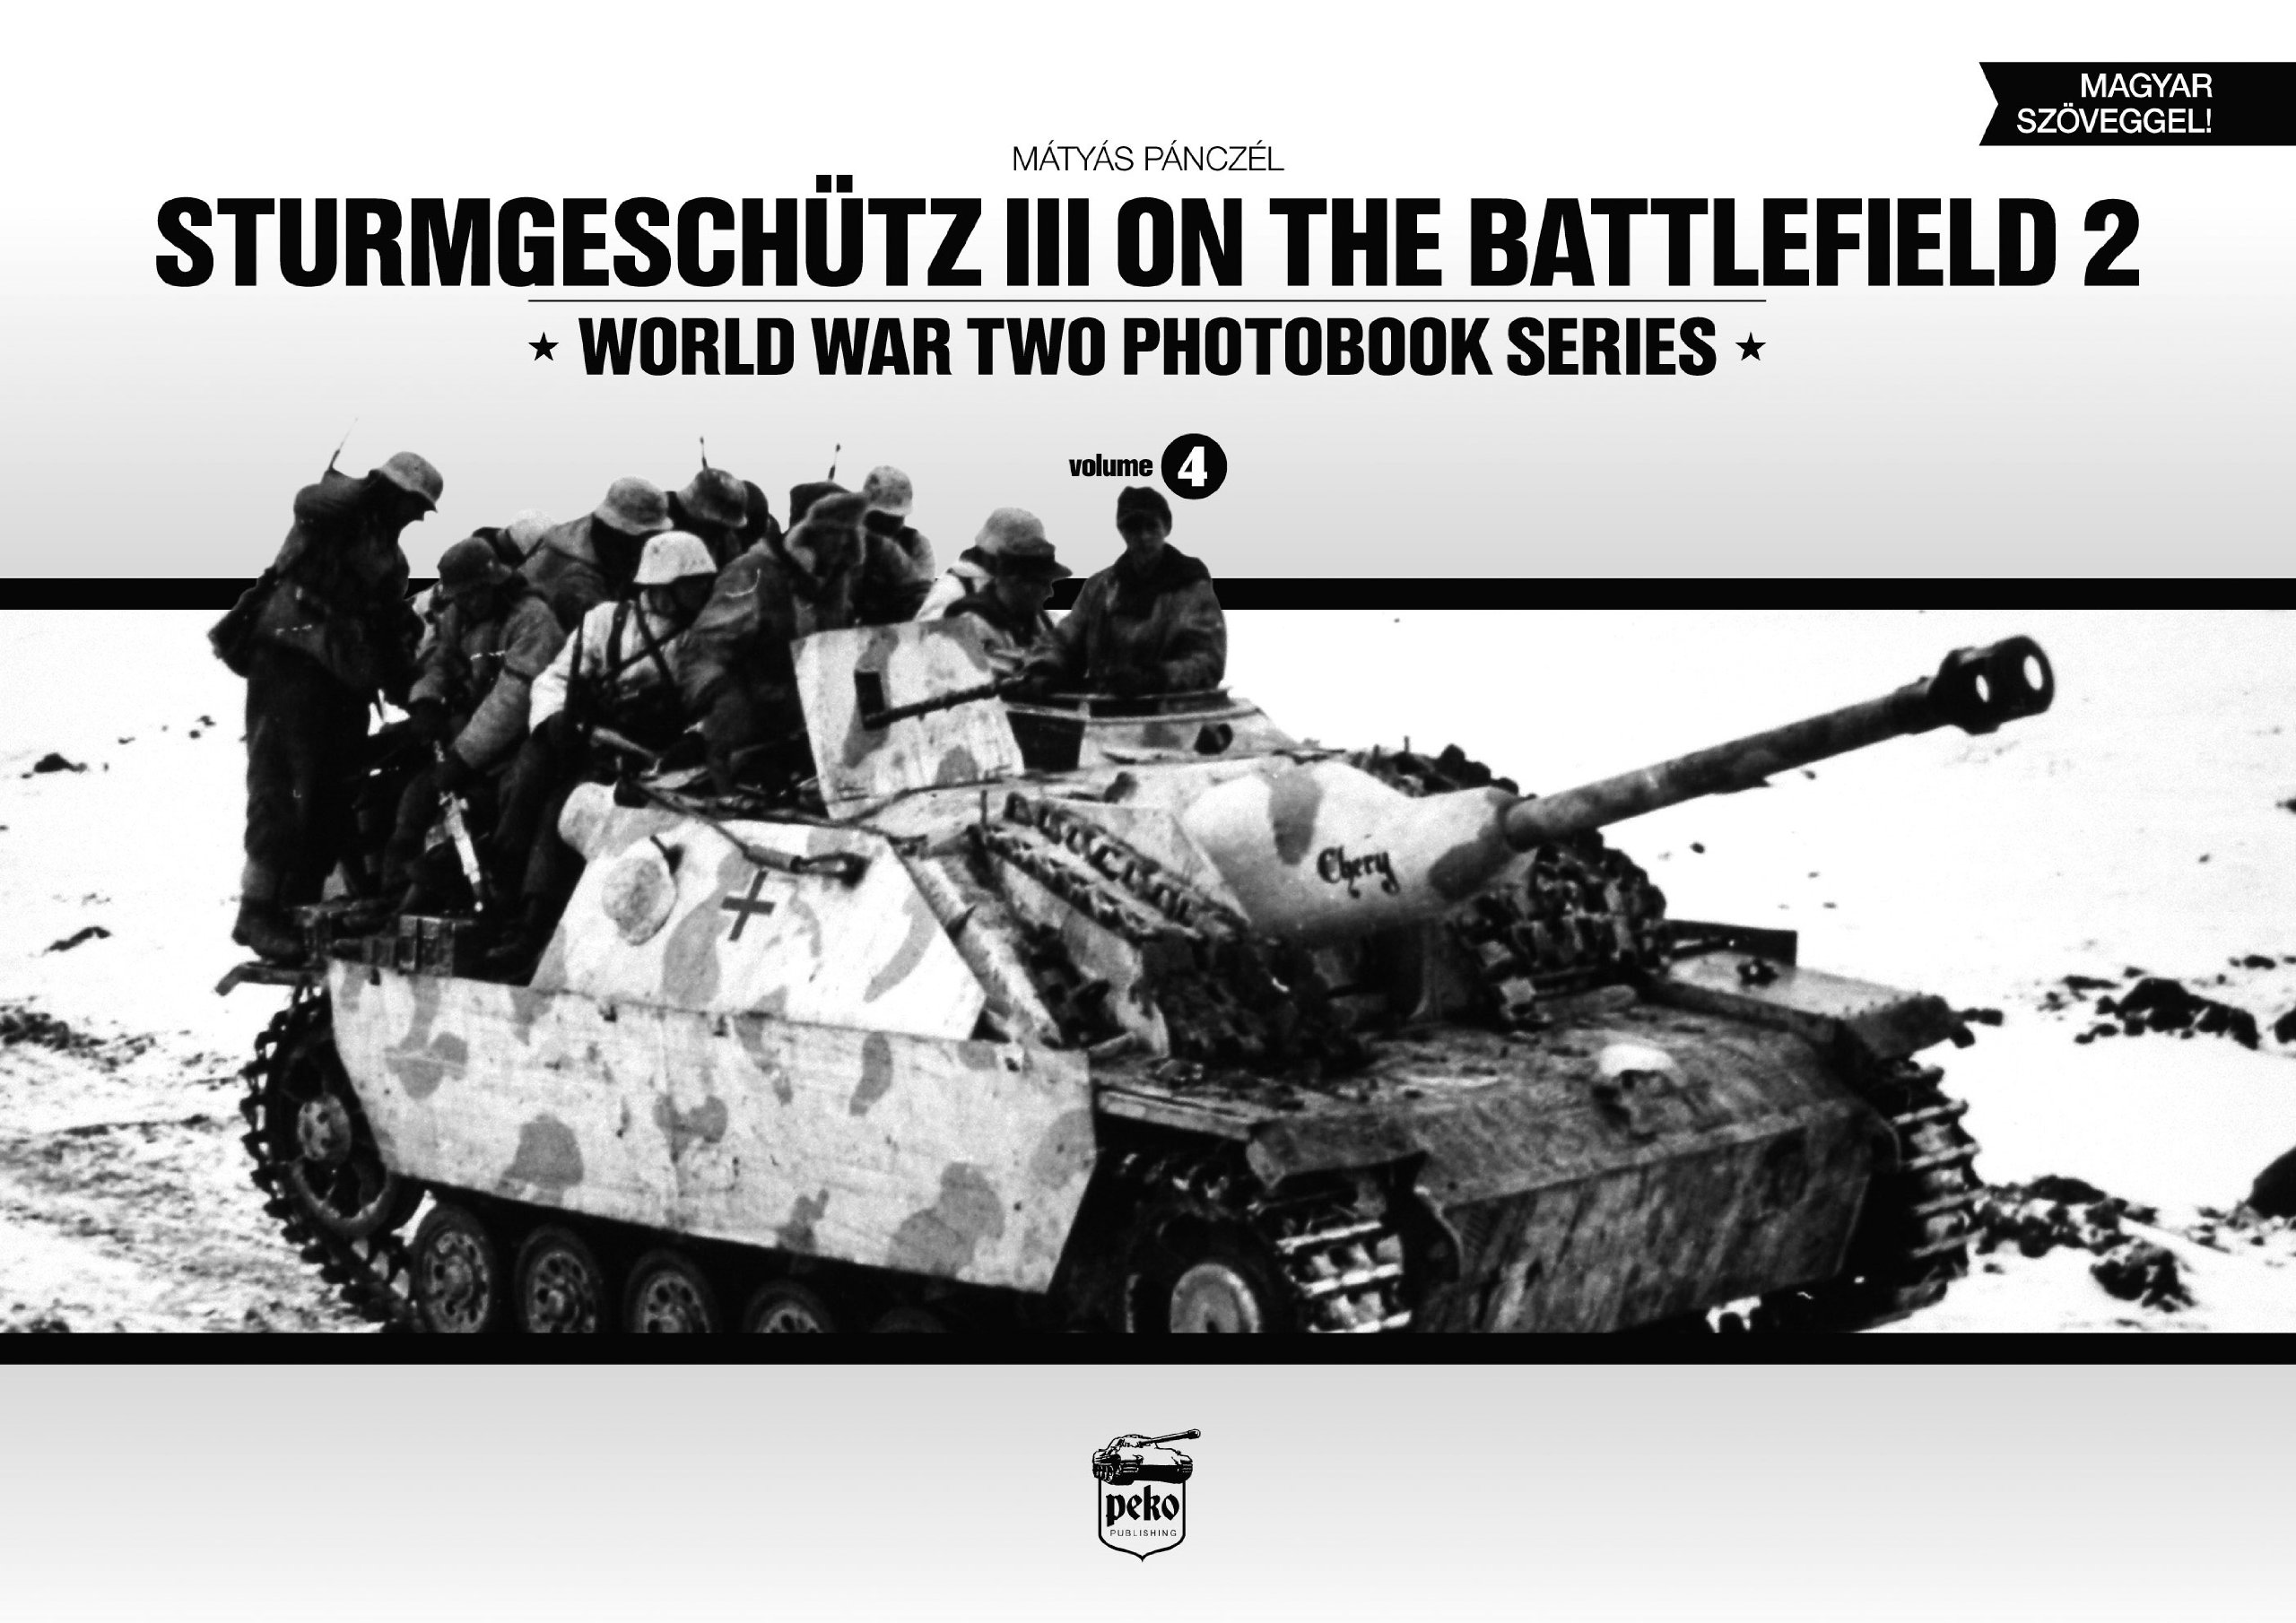 Sturmgeschutz III on the Battlefield, Volume 4 (World War Two Photobook Series) (English and Hungarian Edition)